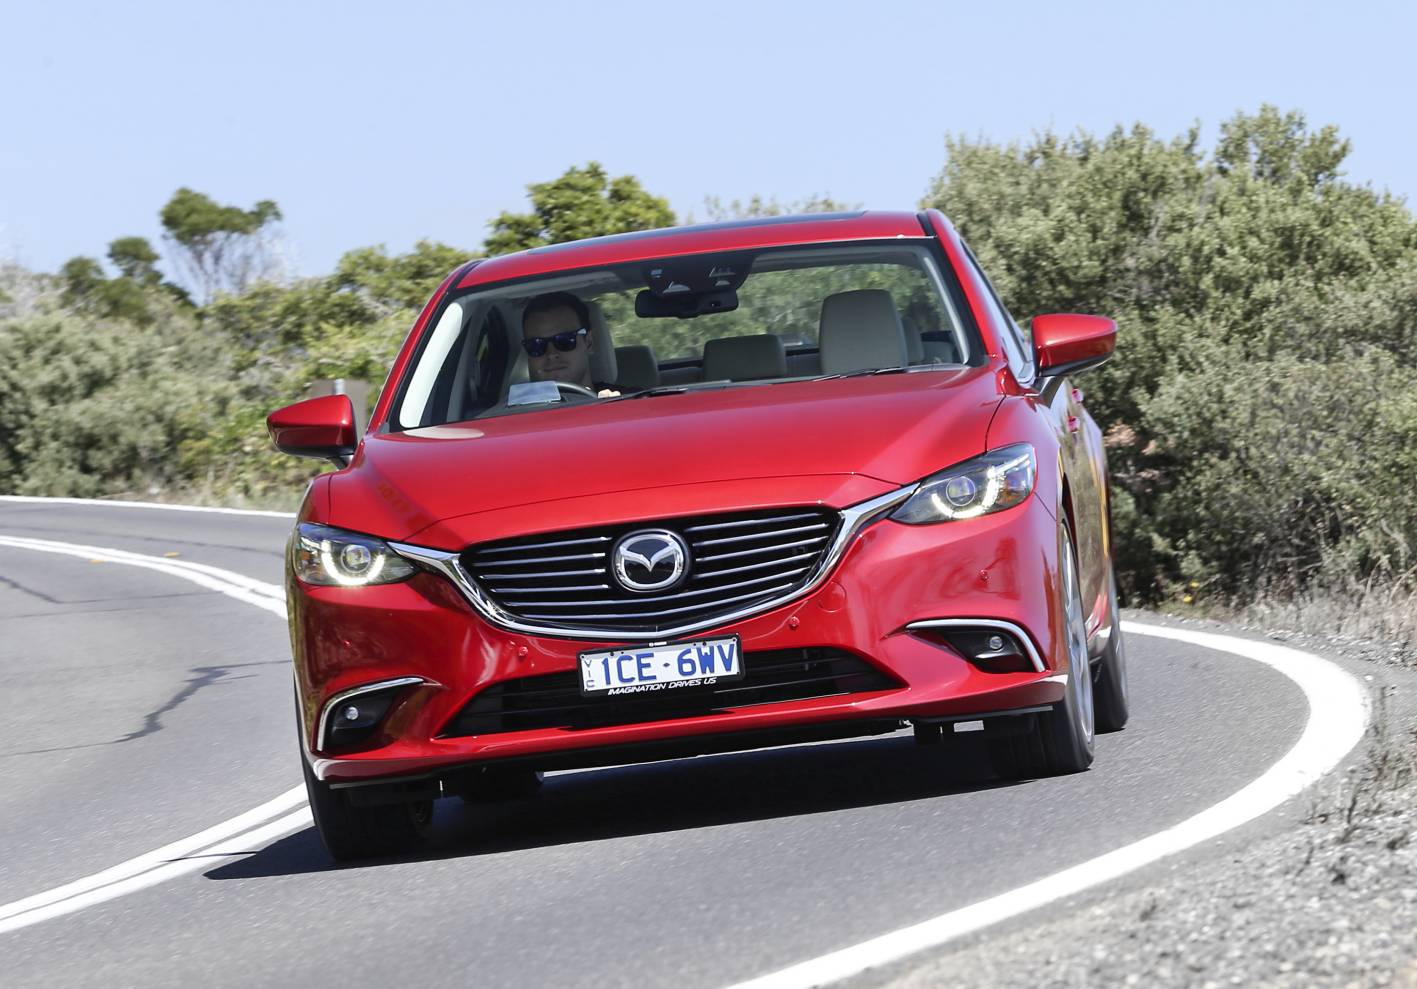 2015 mazda6 sport review practical motoring. Black Bedroom Furniture Sets. Home Design Ideas